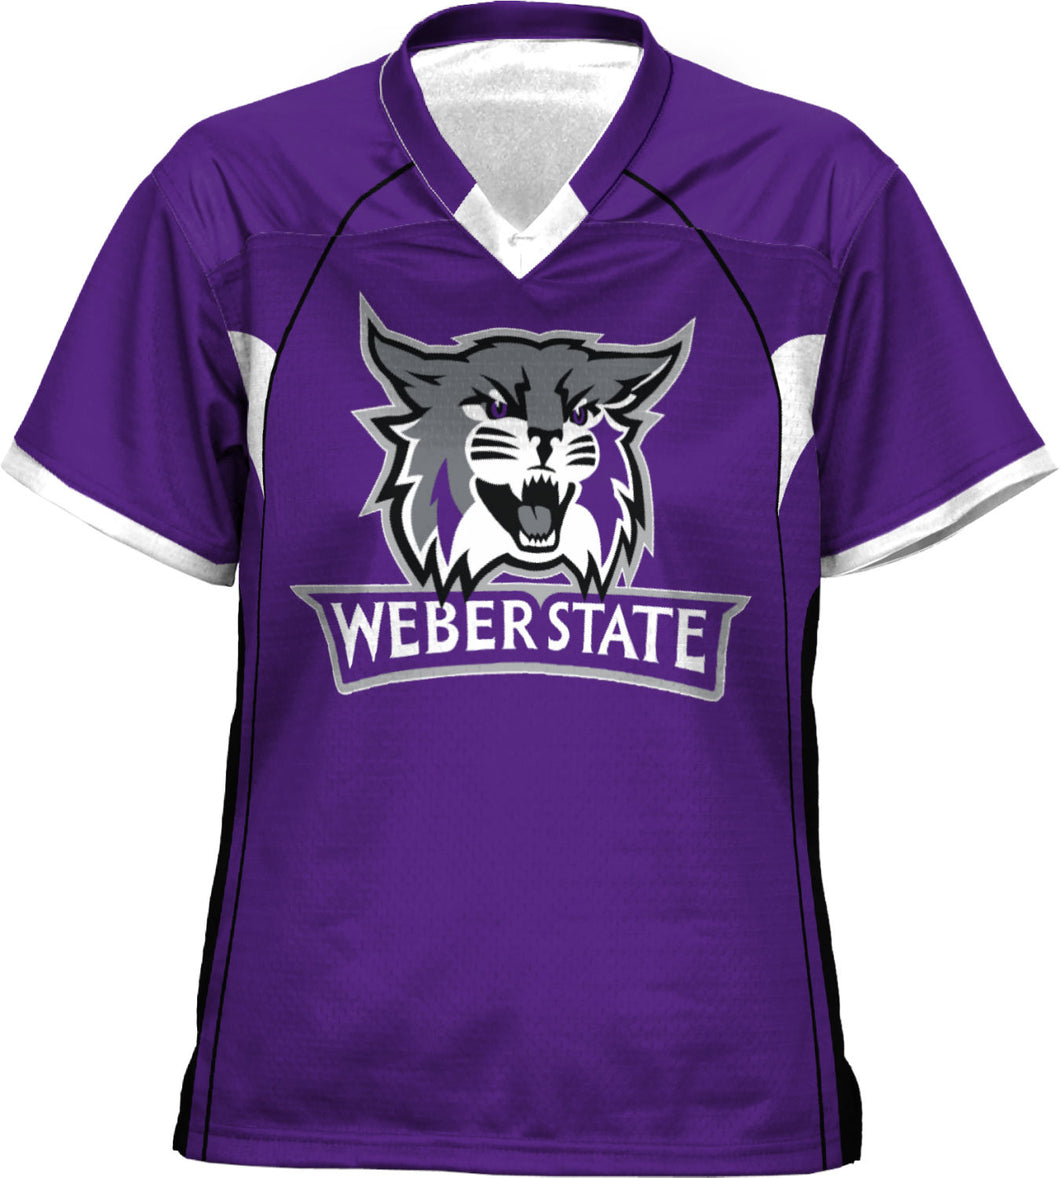 Weber State University: Girls' Football Fan Jersey - No Huddle